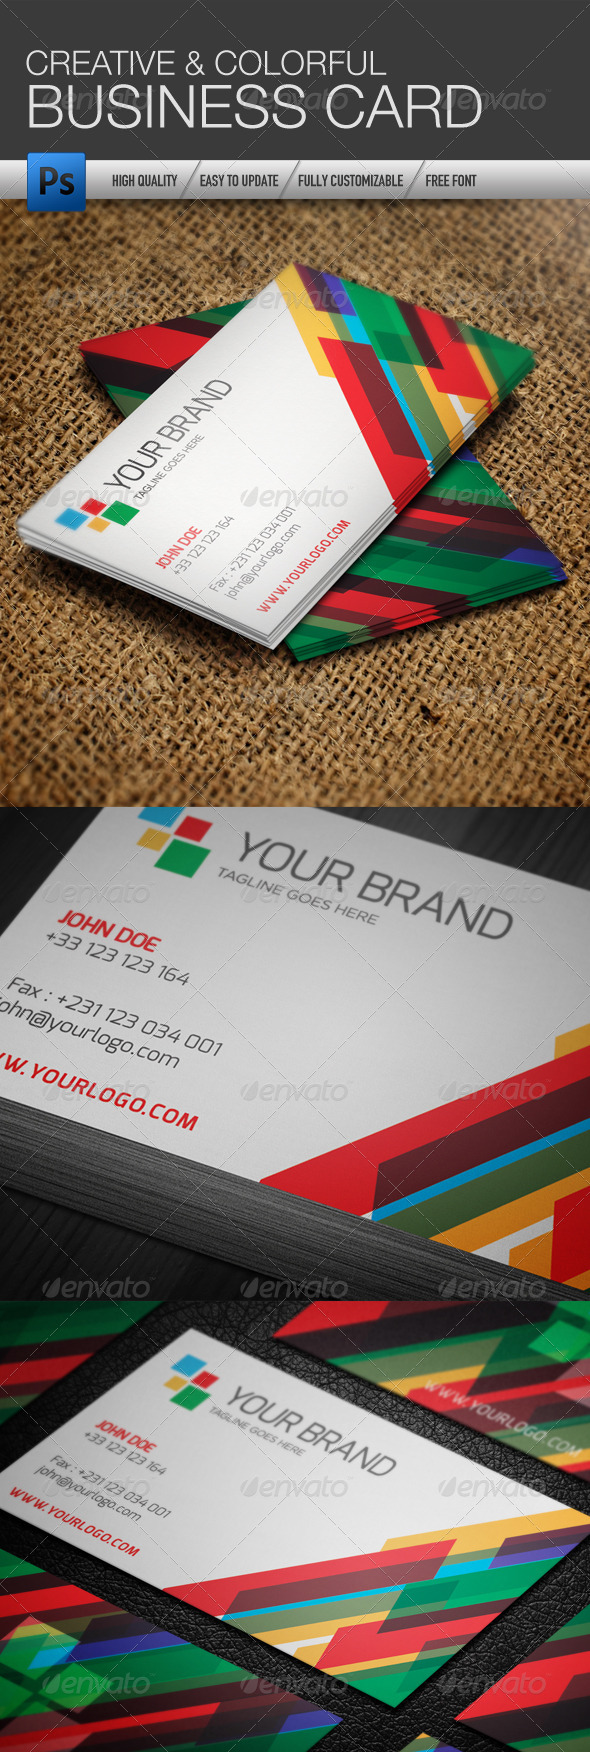 GraphicRiver Creative Colorful Business Card Template 4118848